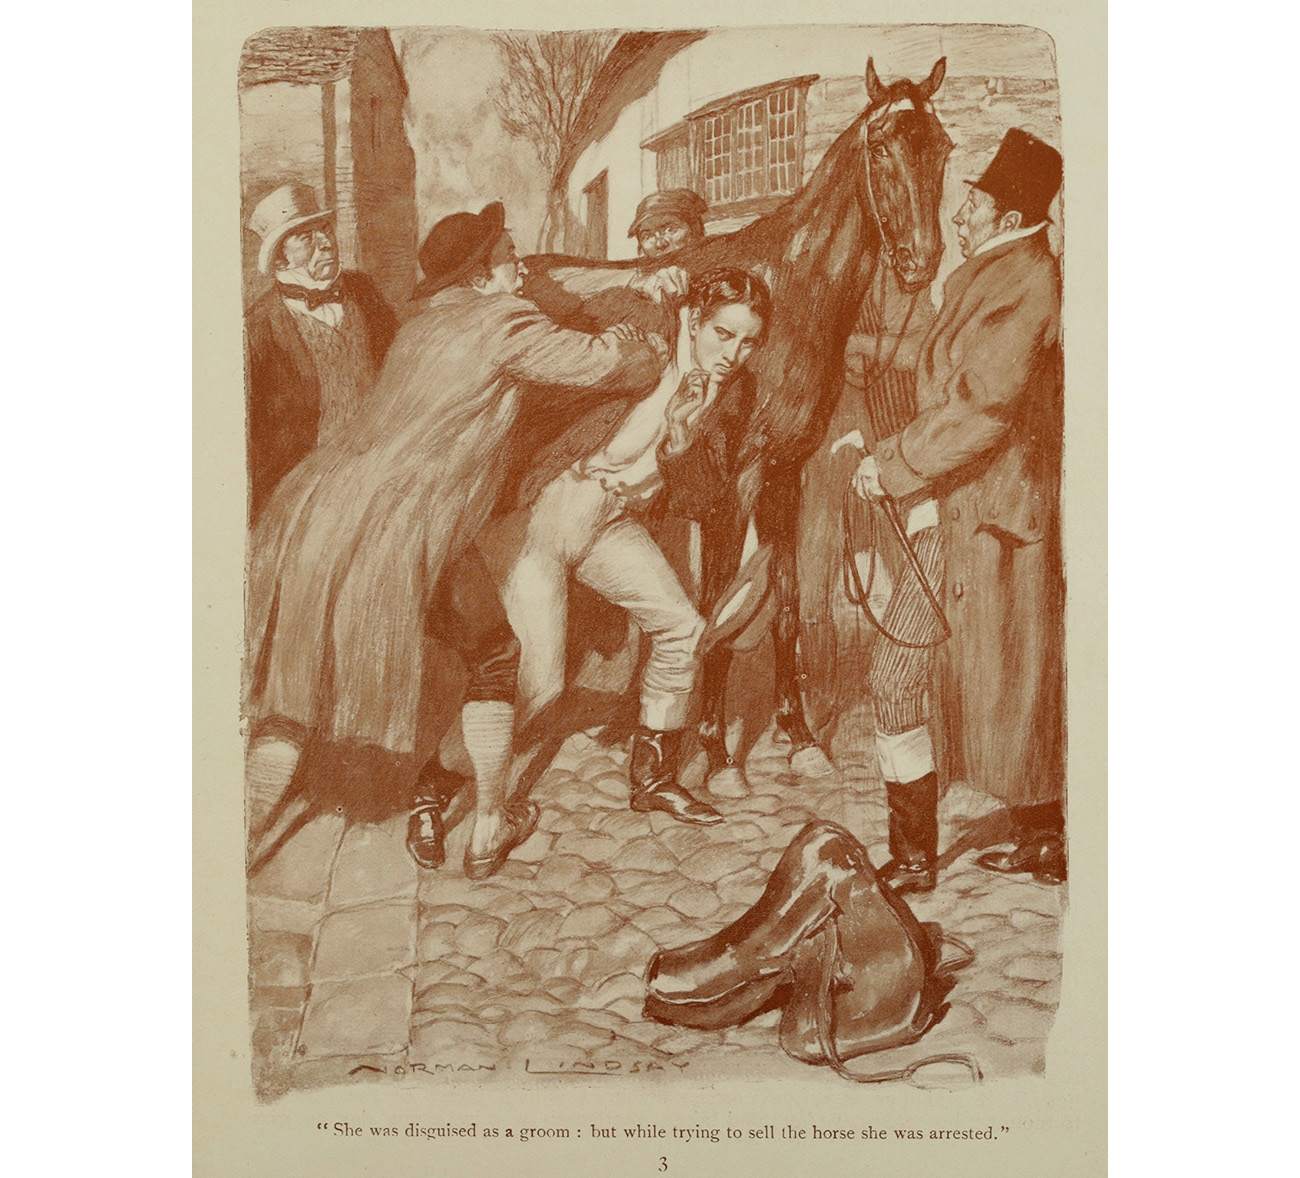 'She was disguised as a groom: but while trying to sell the horse she was arrested'/ illustration by Norman Lindsay